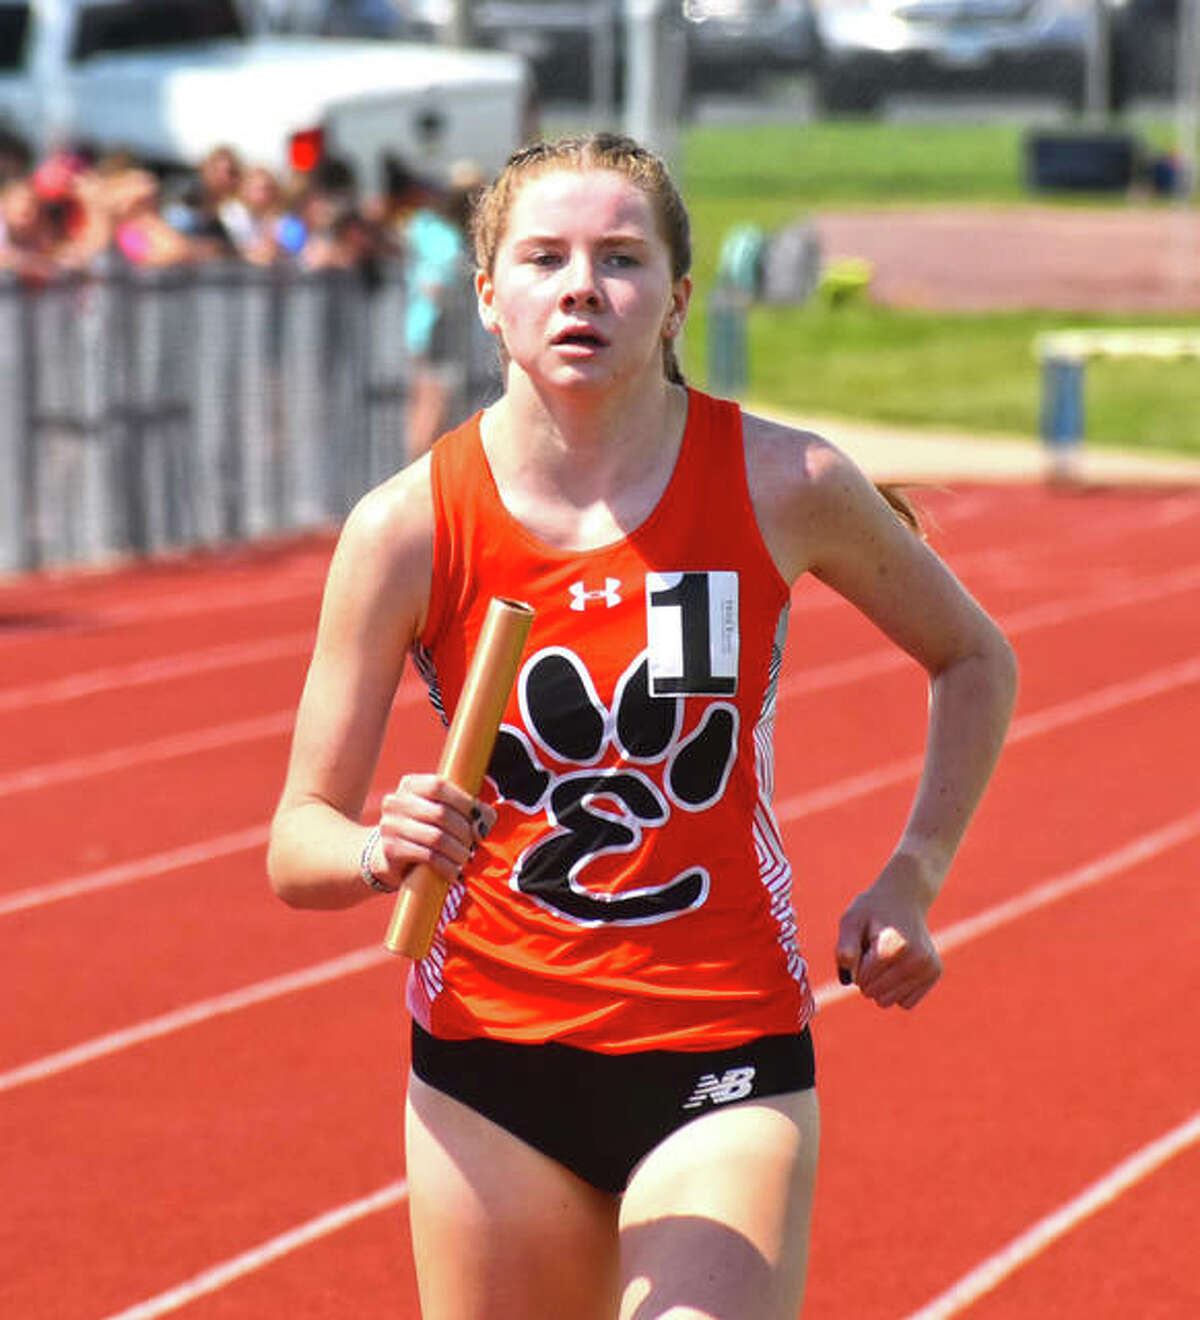 Edwardsville's Riley Knoyle finishes off the win in the 3,200-meter relay at the Class 3A O'Fallon Sectional.